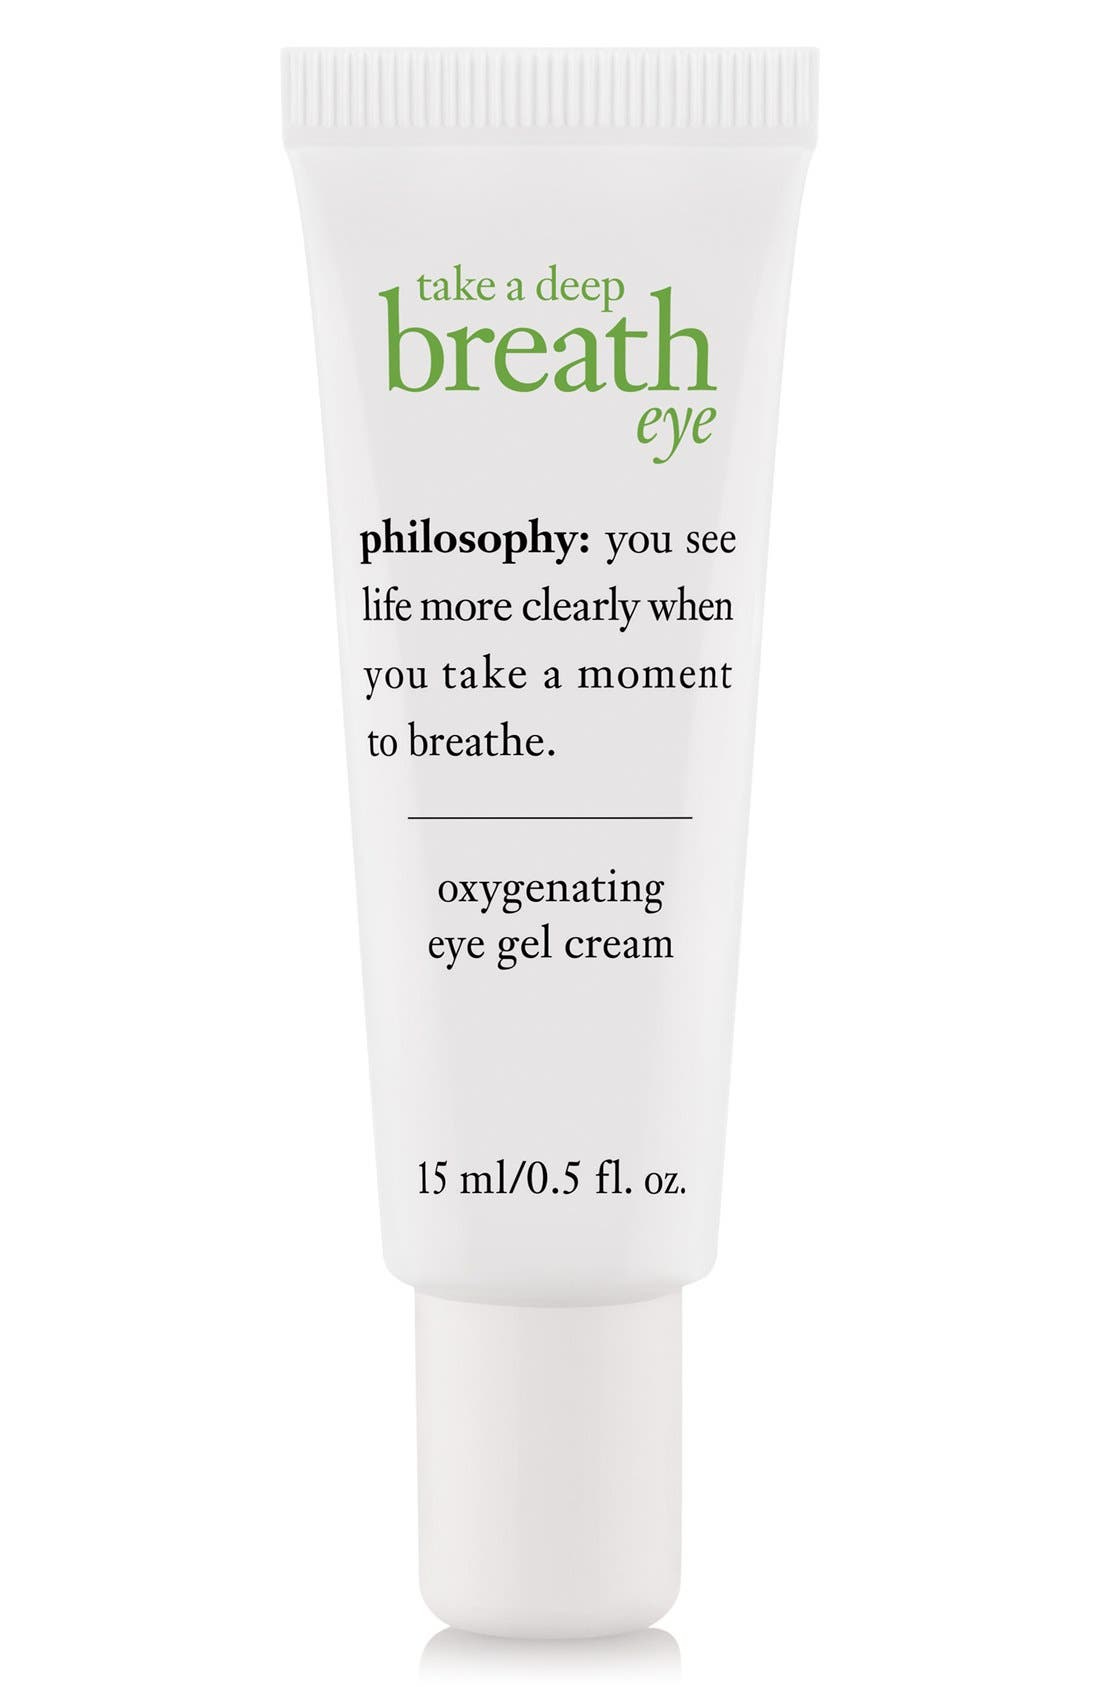 philosophy 'take a deep breath' oxygenating eye gel cream